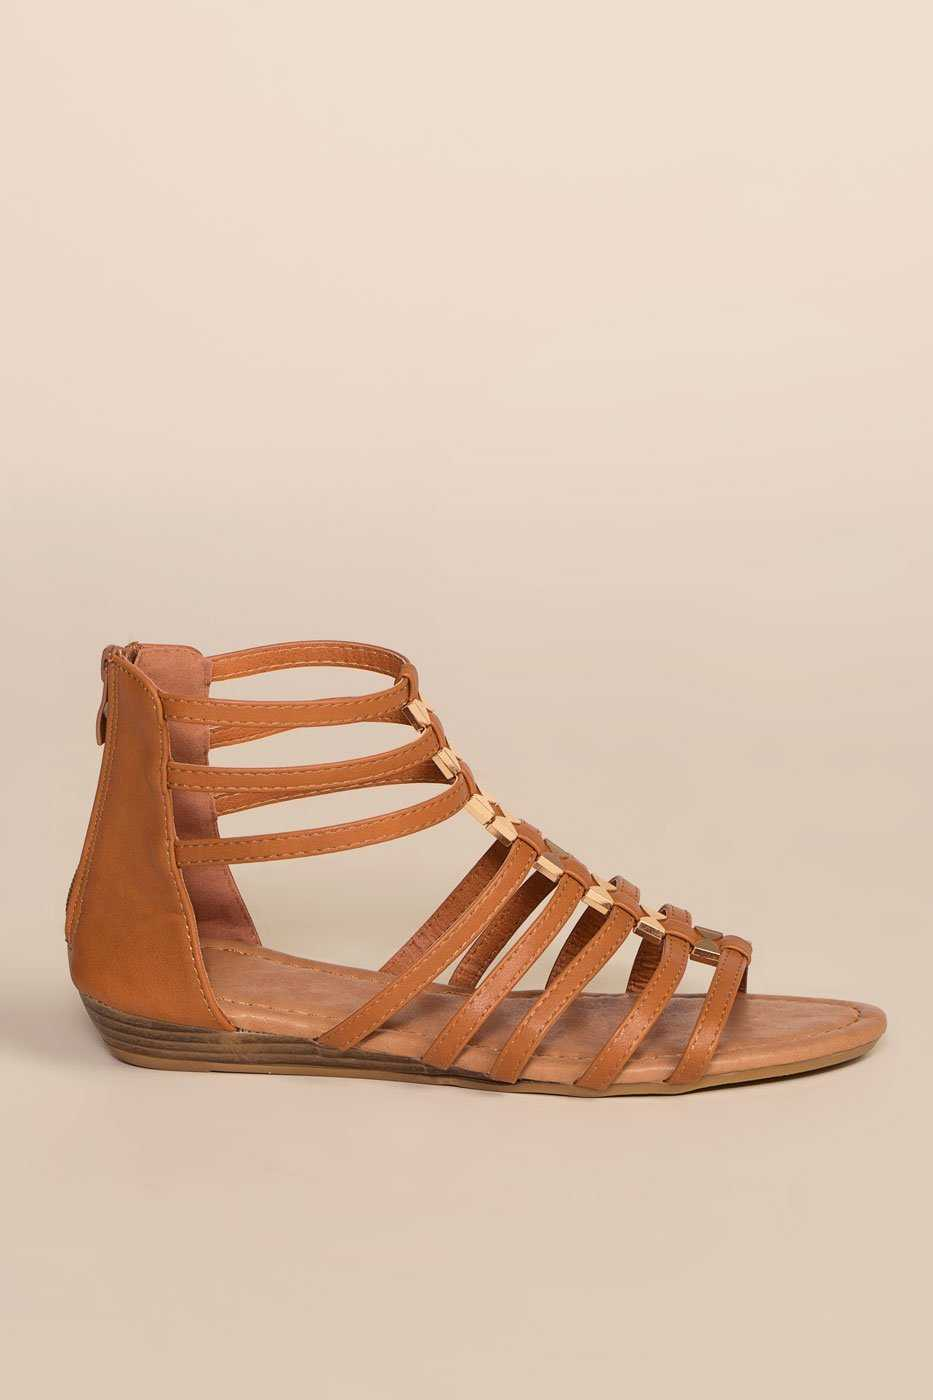 Sandals - Luca Gladiator Sandals - Tan